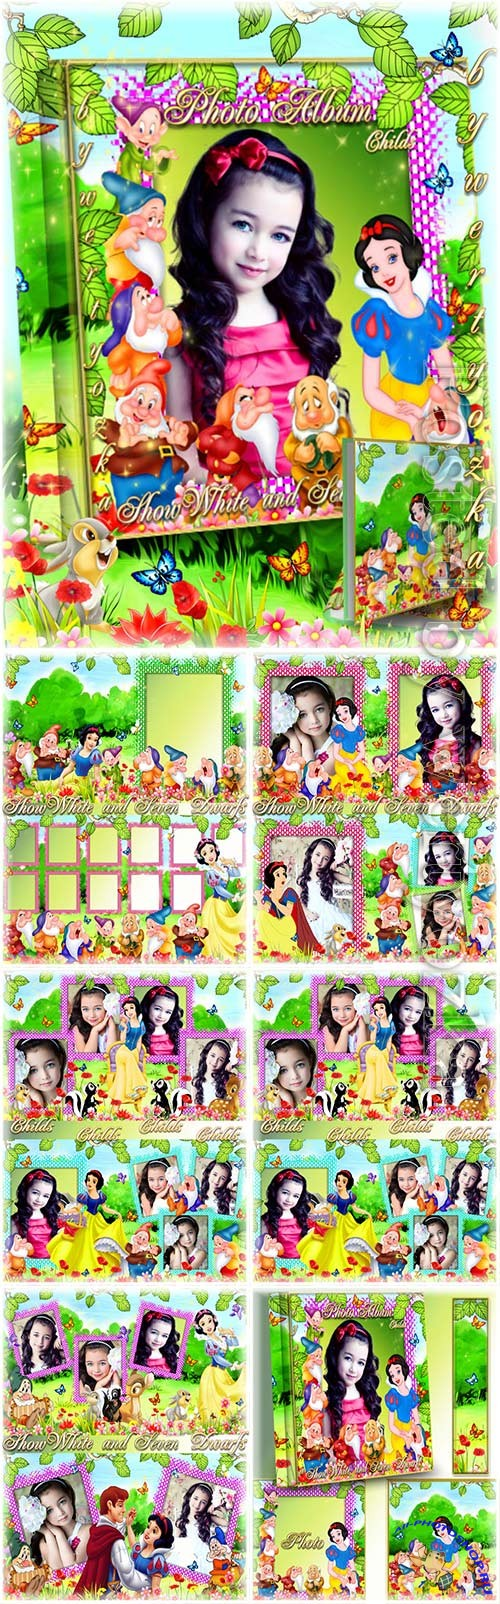 Children's photo album with snow white and gnomes